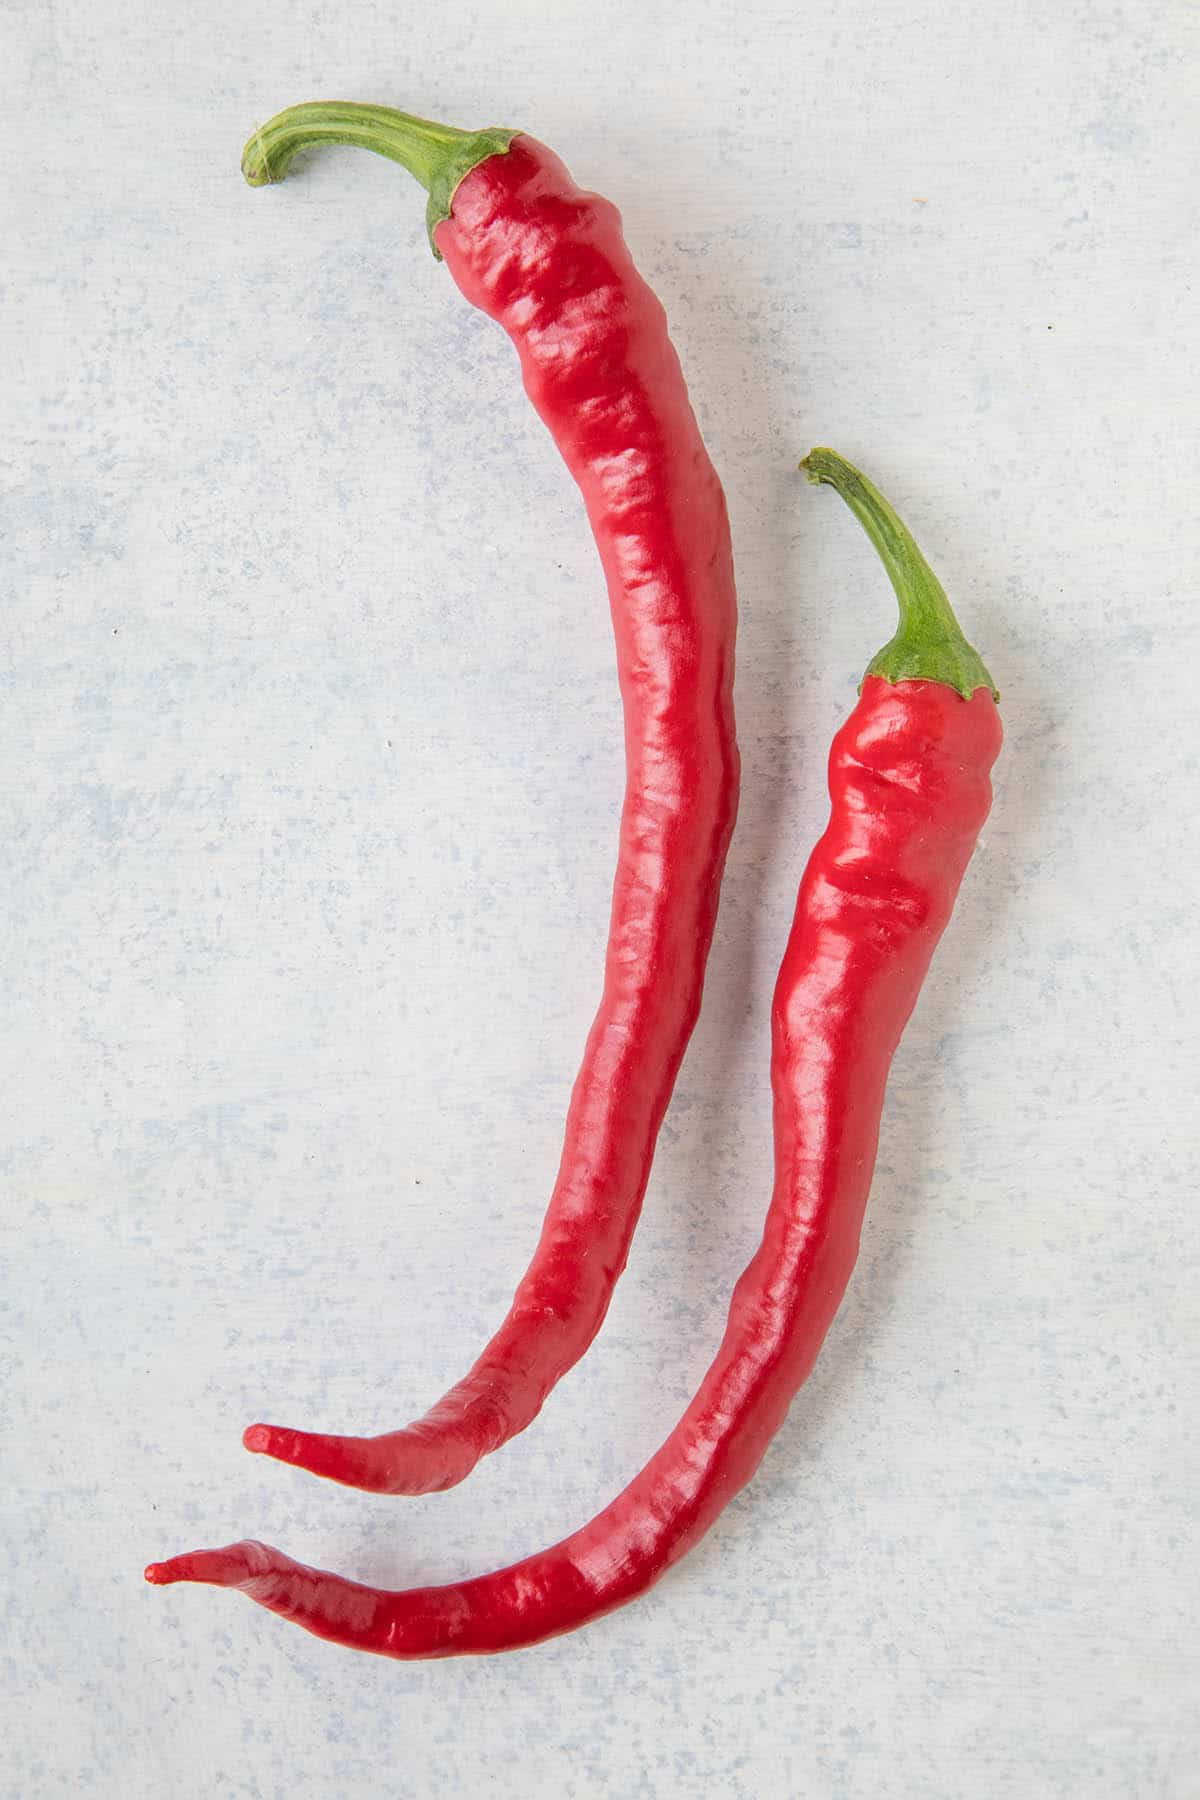 Aji Sivri Chili Pepper